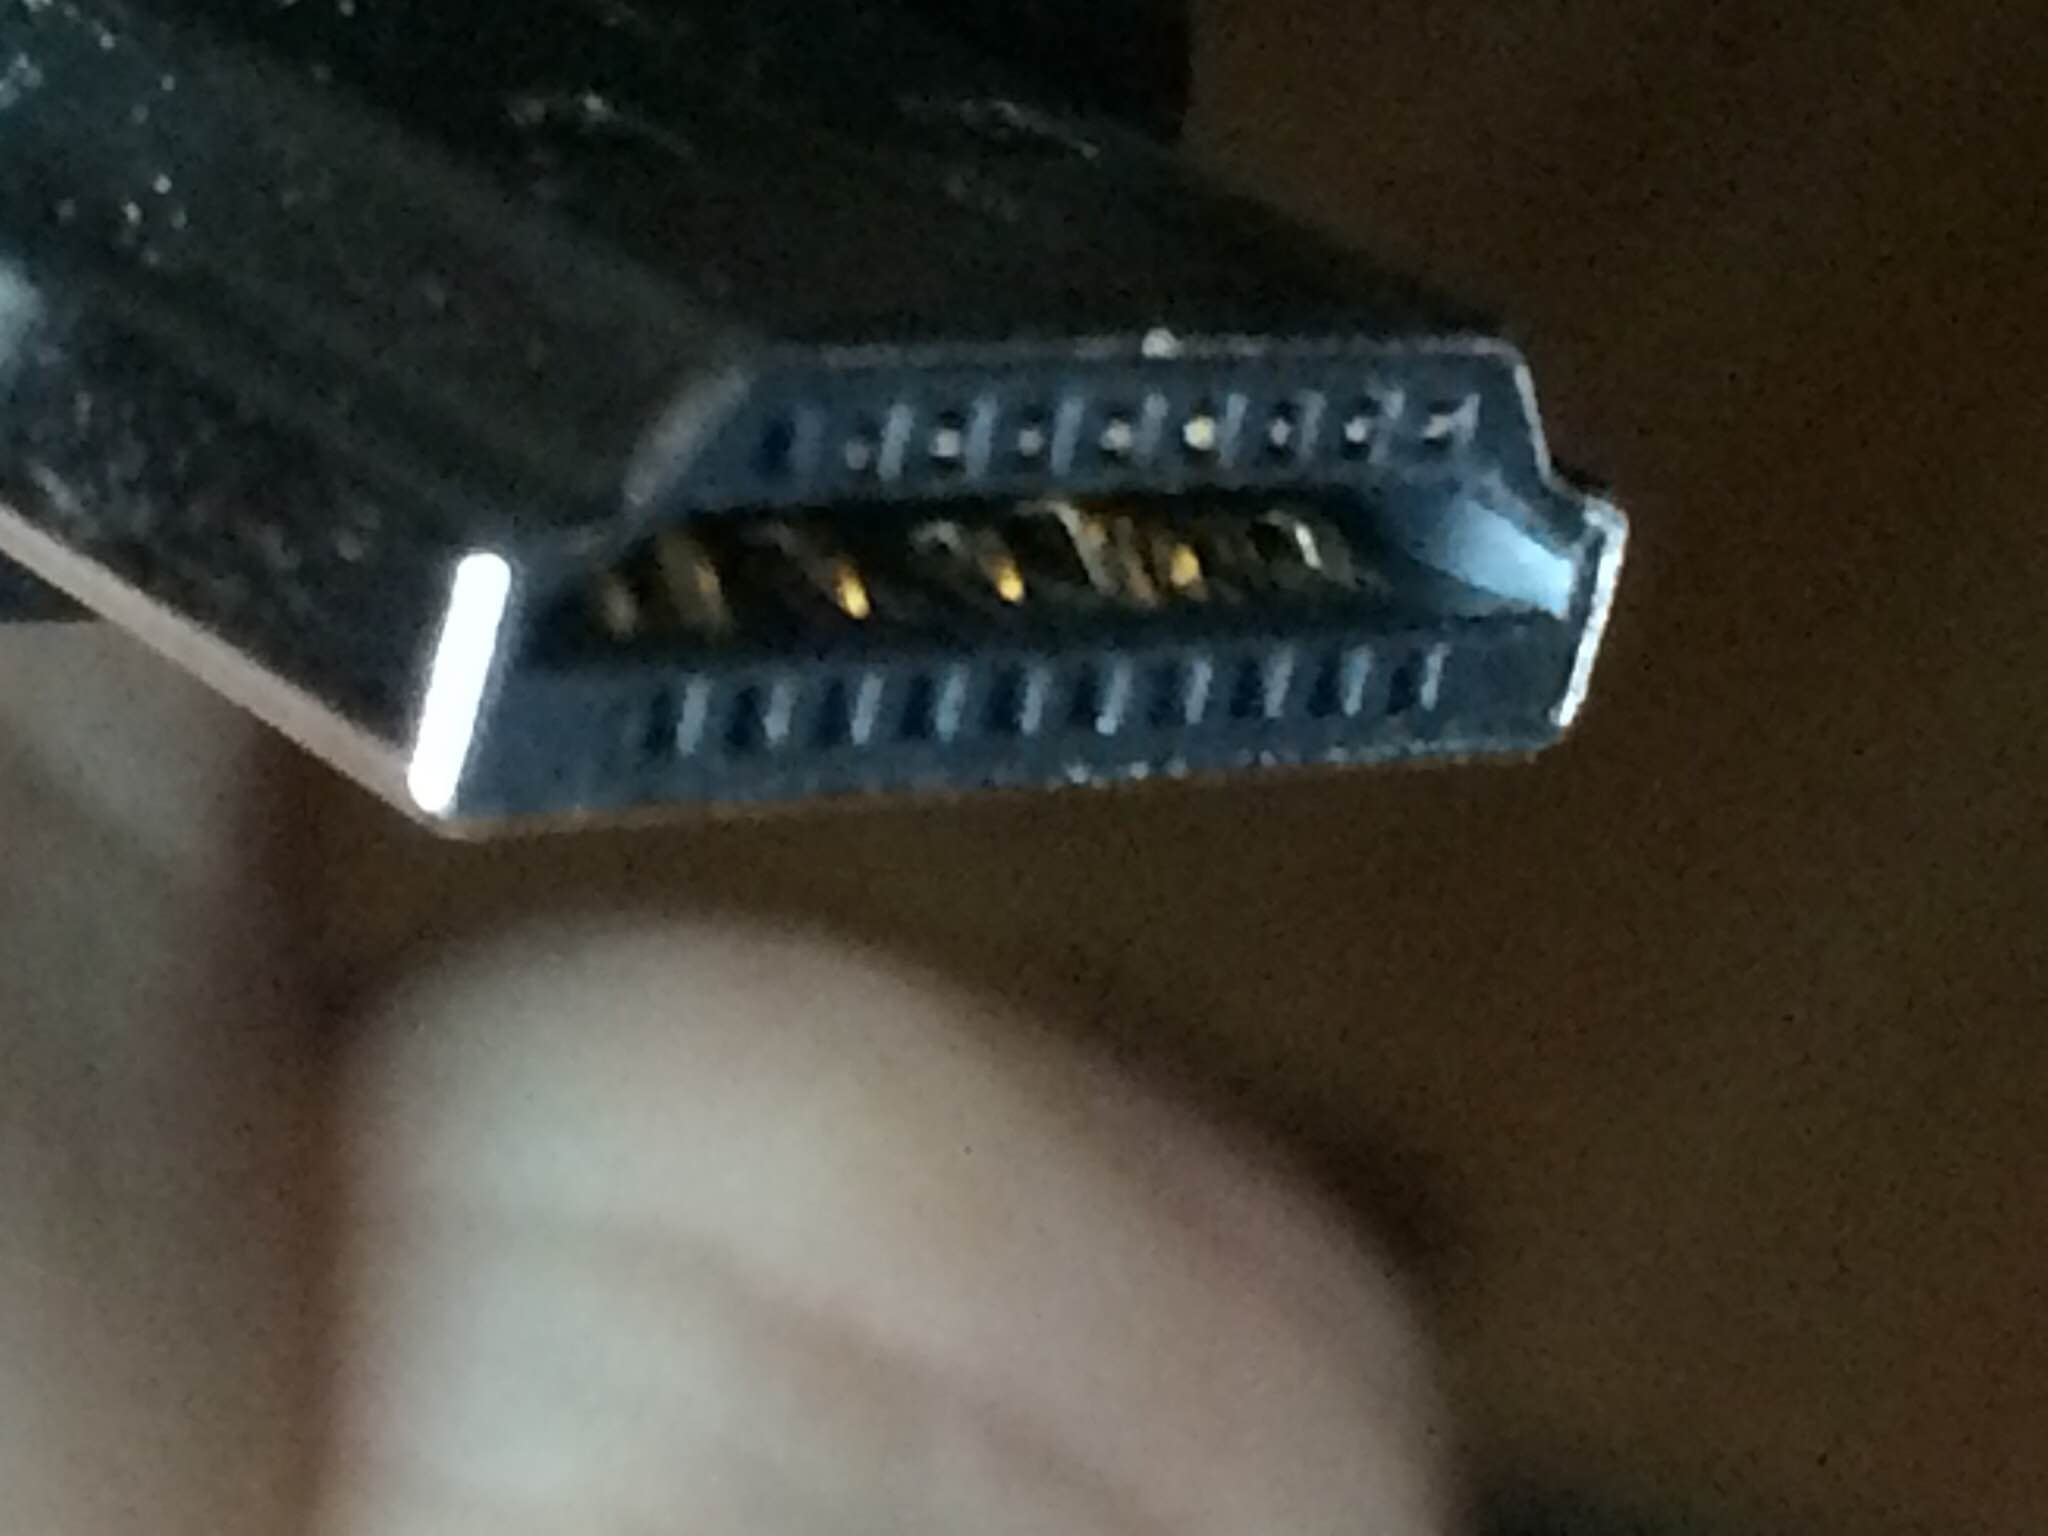 Photographic Proof Of The Cause No Hdmi Detected Oculus Pin Wire Diagram Oc2